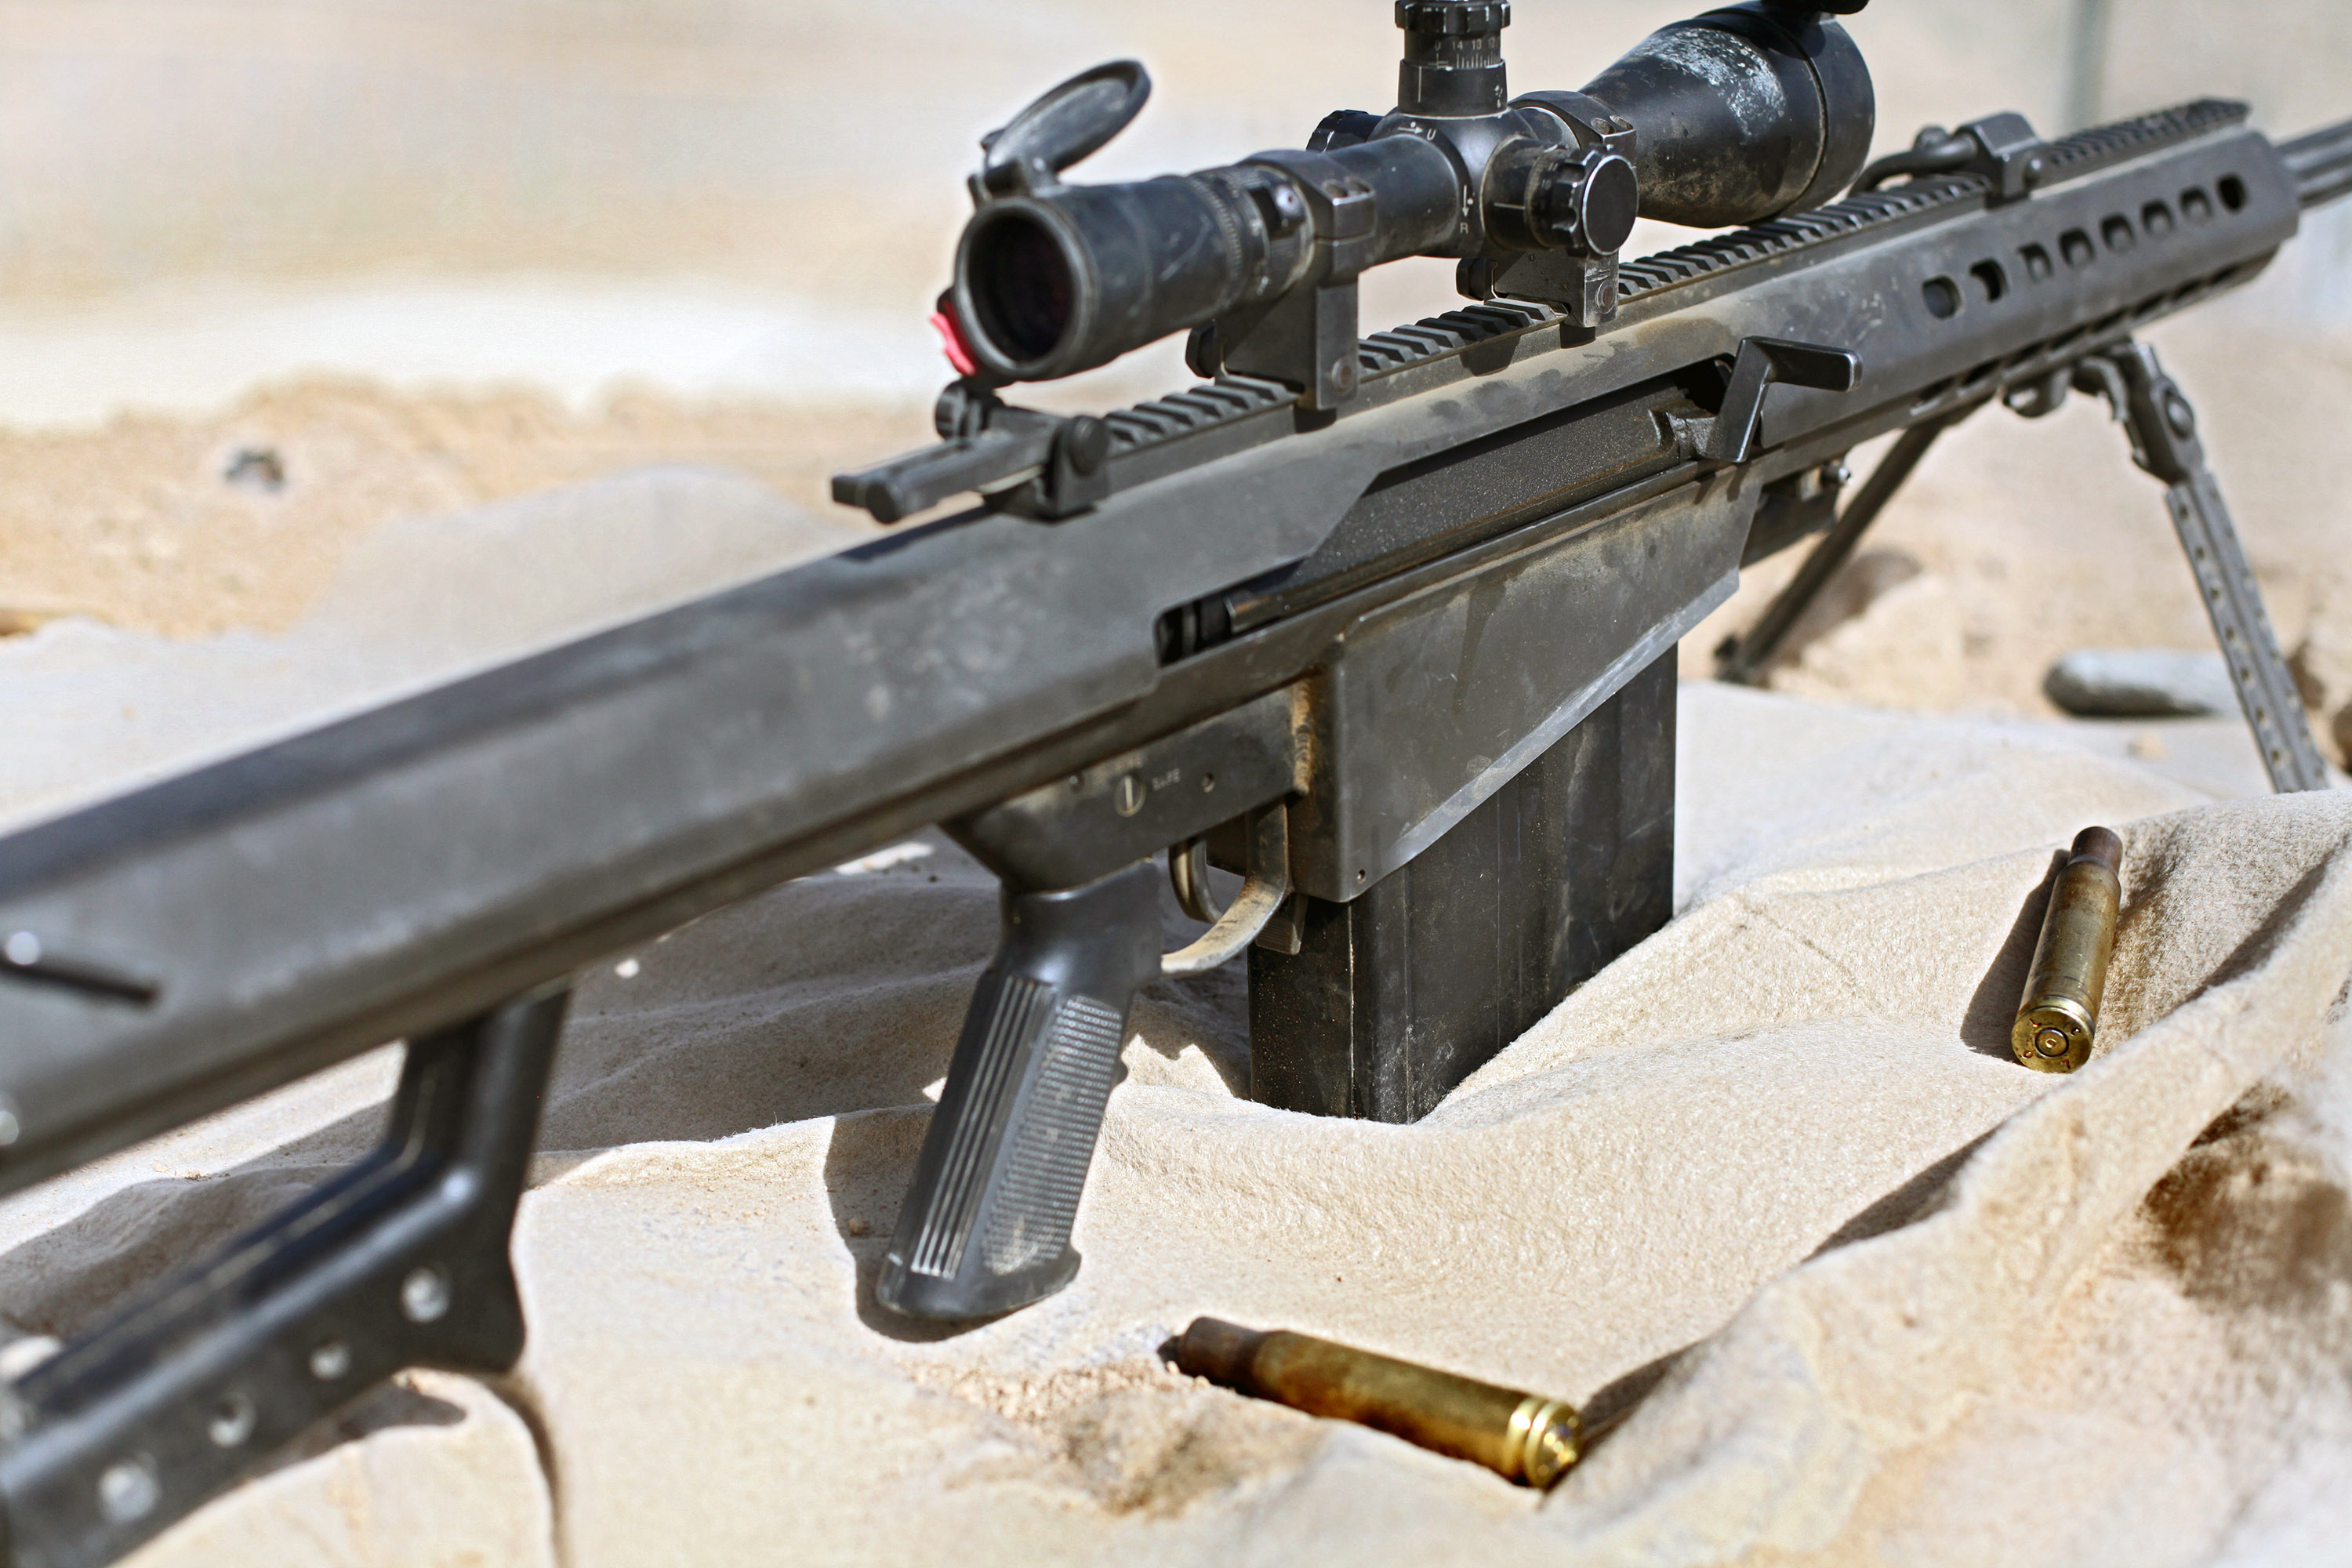 The Barrett M82 Sniper Rifle The Gun Every Military Fears Most The National Interest